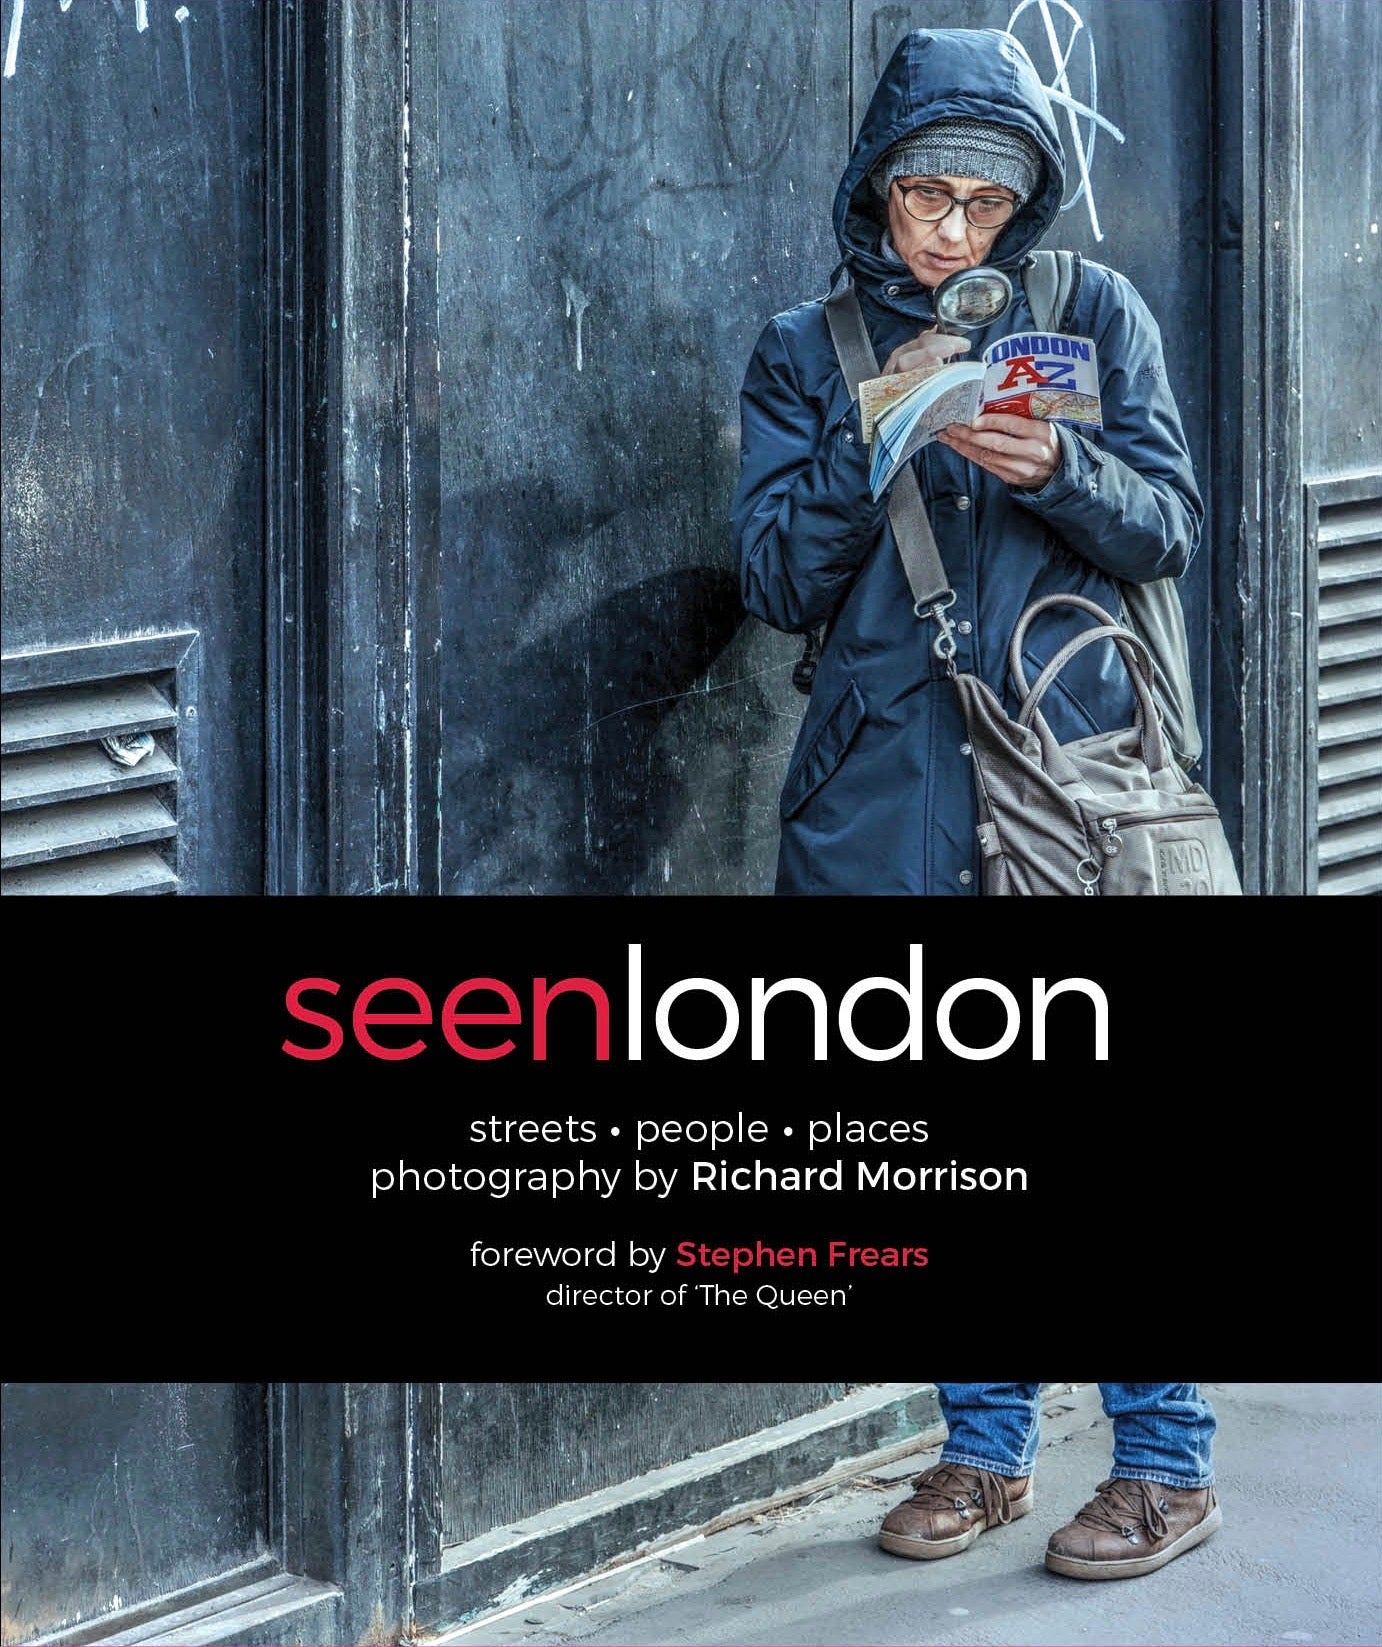 Seen London photographic book